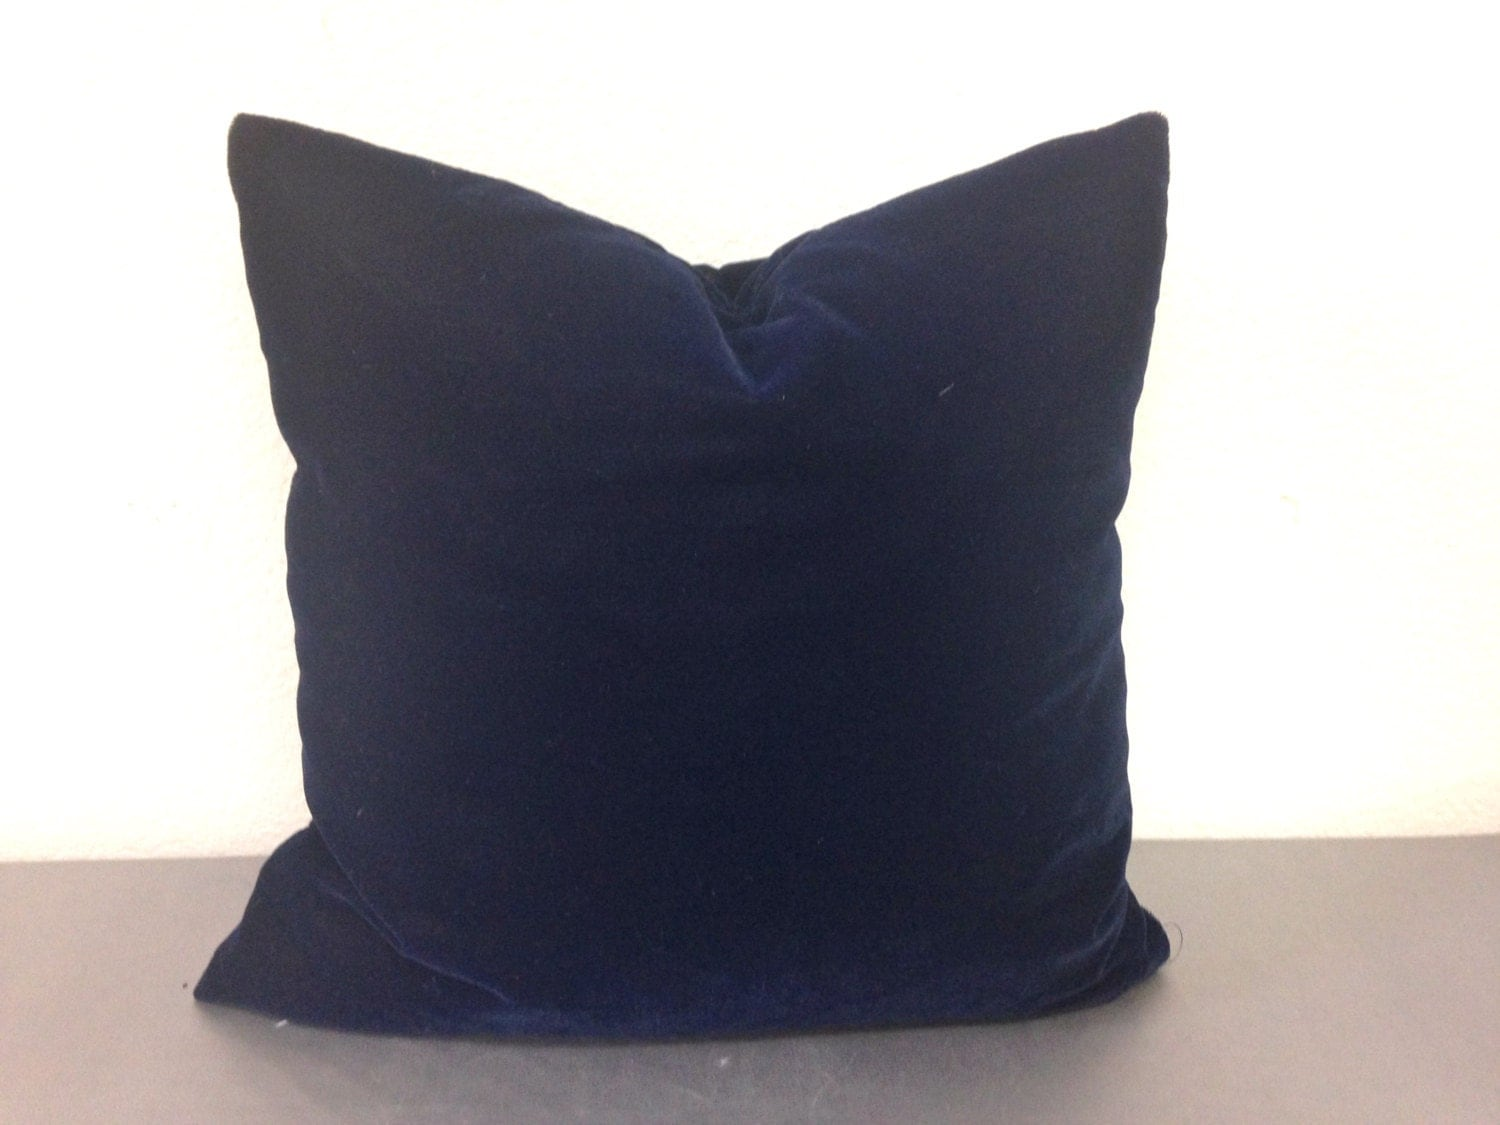 Blue Velvet Throw Pillows : Navy Blue Velvet Decorative Throw Pillow Cover / by pillowpuff